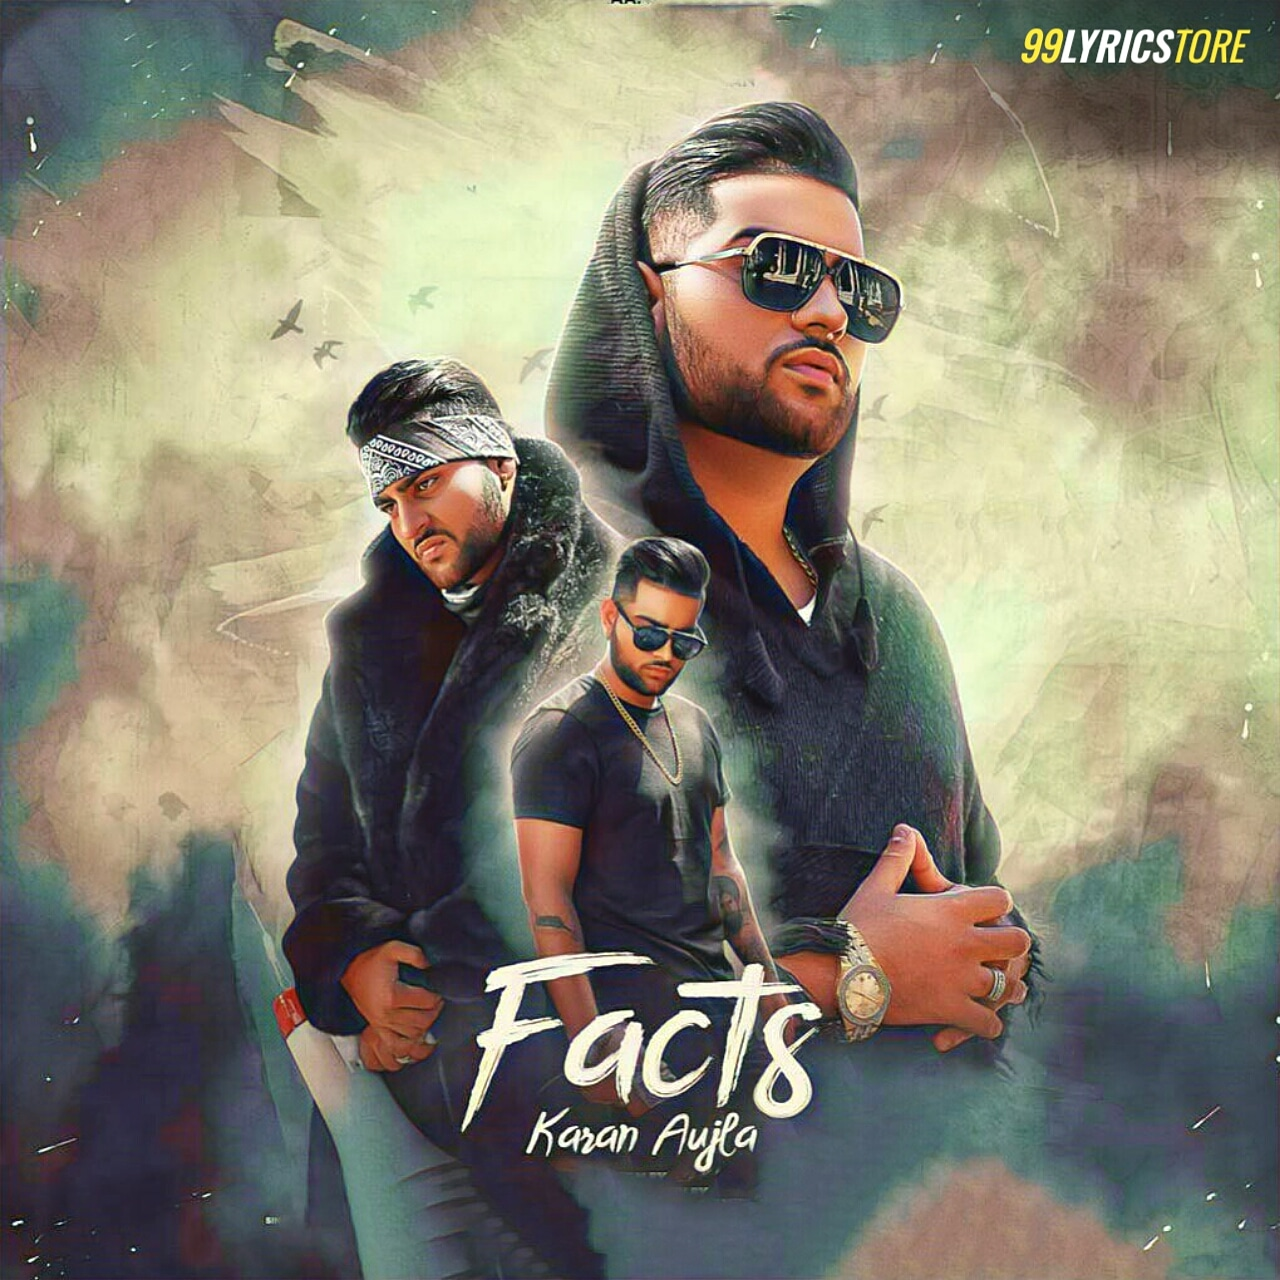 Facts Punjabi song lyrics sung by Karan Aujla